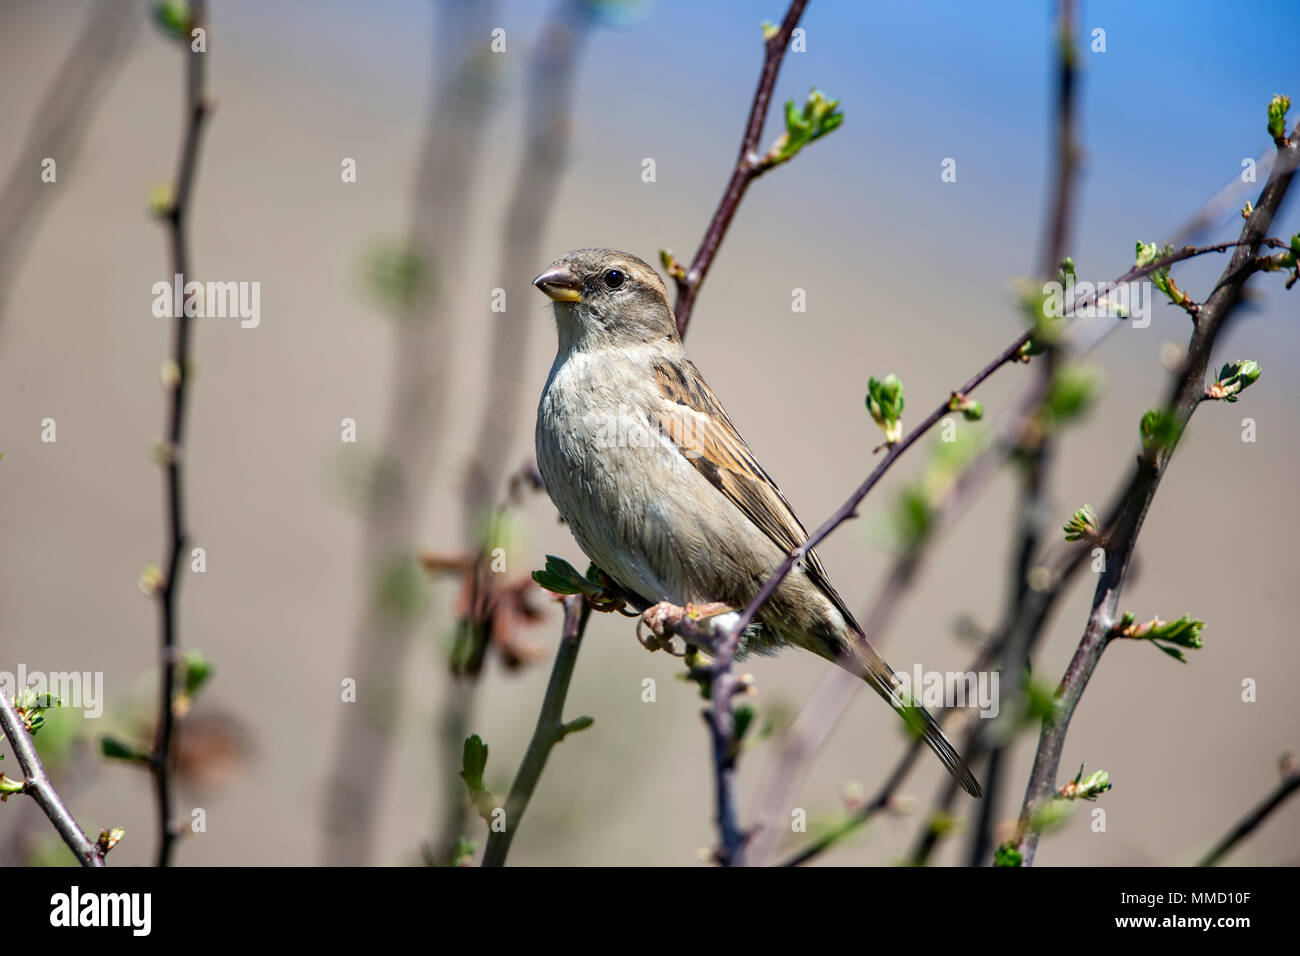 Female House Sparrow Passer Domesticus perched in a hawthorn bush in Spring - Stock Image